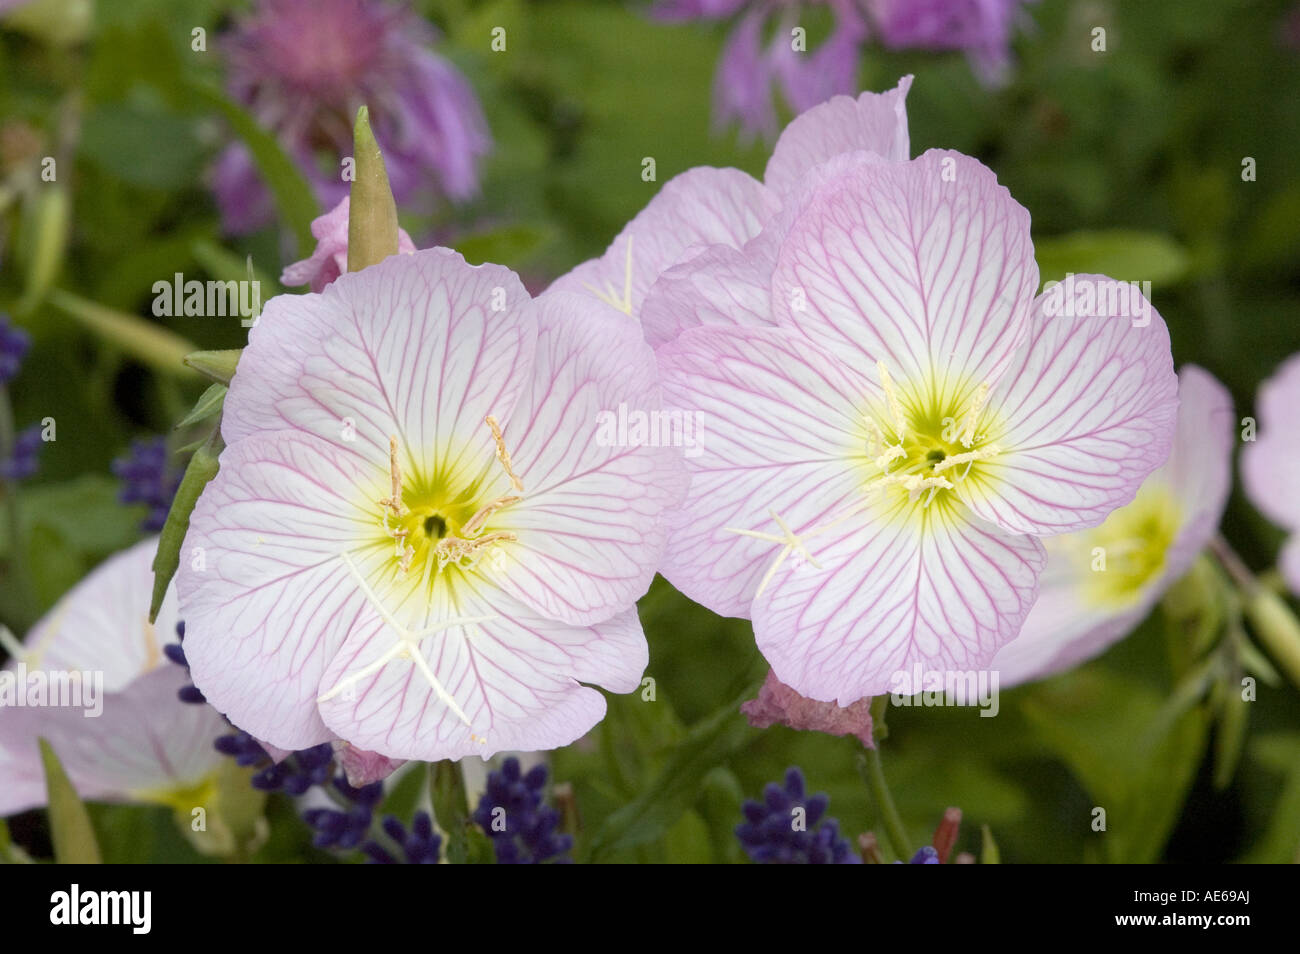 Oenothera Siskiyou Pink Evening Primrose with delicate pink laced flowers Member of the medicinal oil family - Stock Image